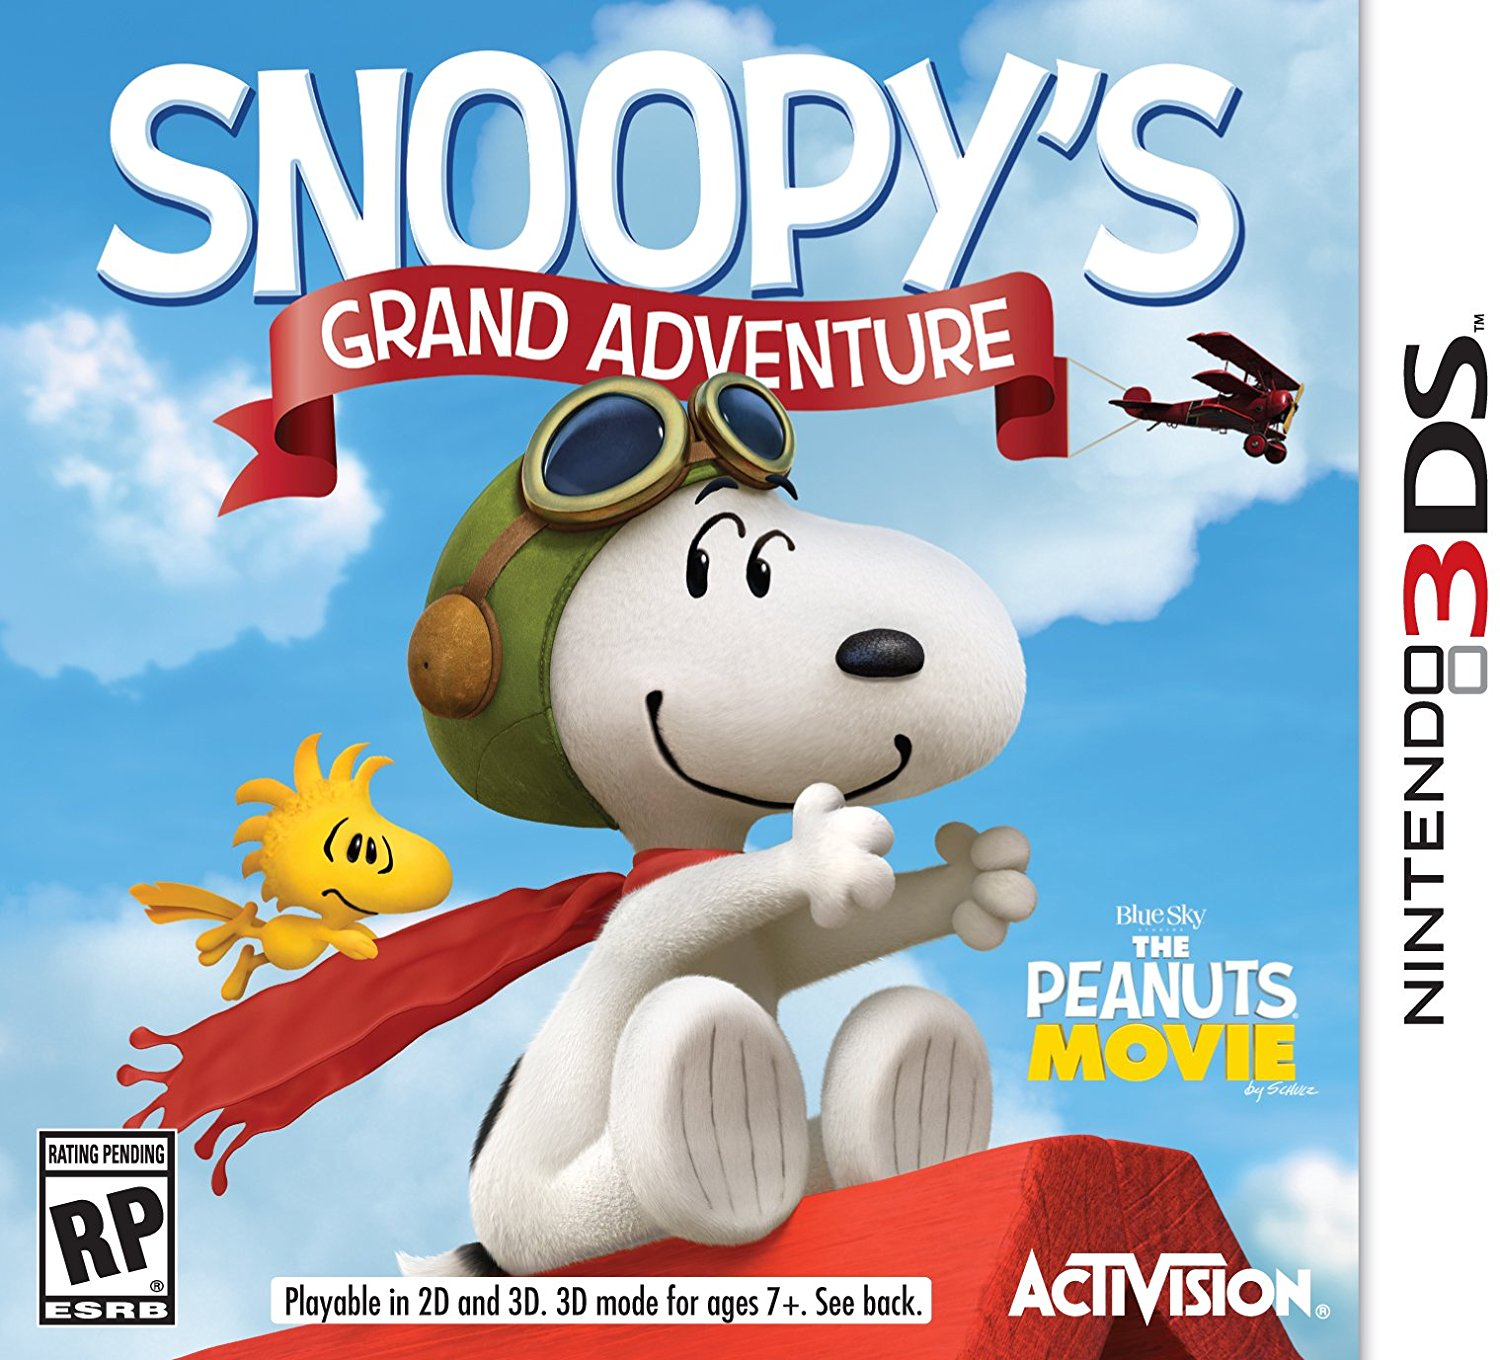 Snoopy's Grand Adventure - Nintendo 3DS, Lead Snoopy on a grand adventure through worlds full of imagination to help him find Charlie Brown and all of his friends! By Activision